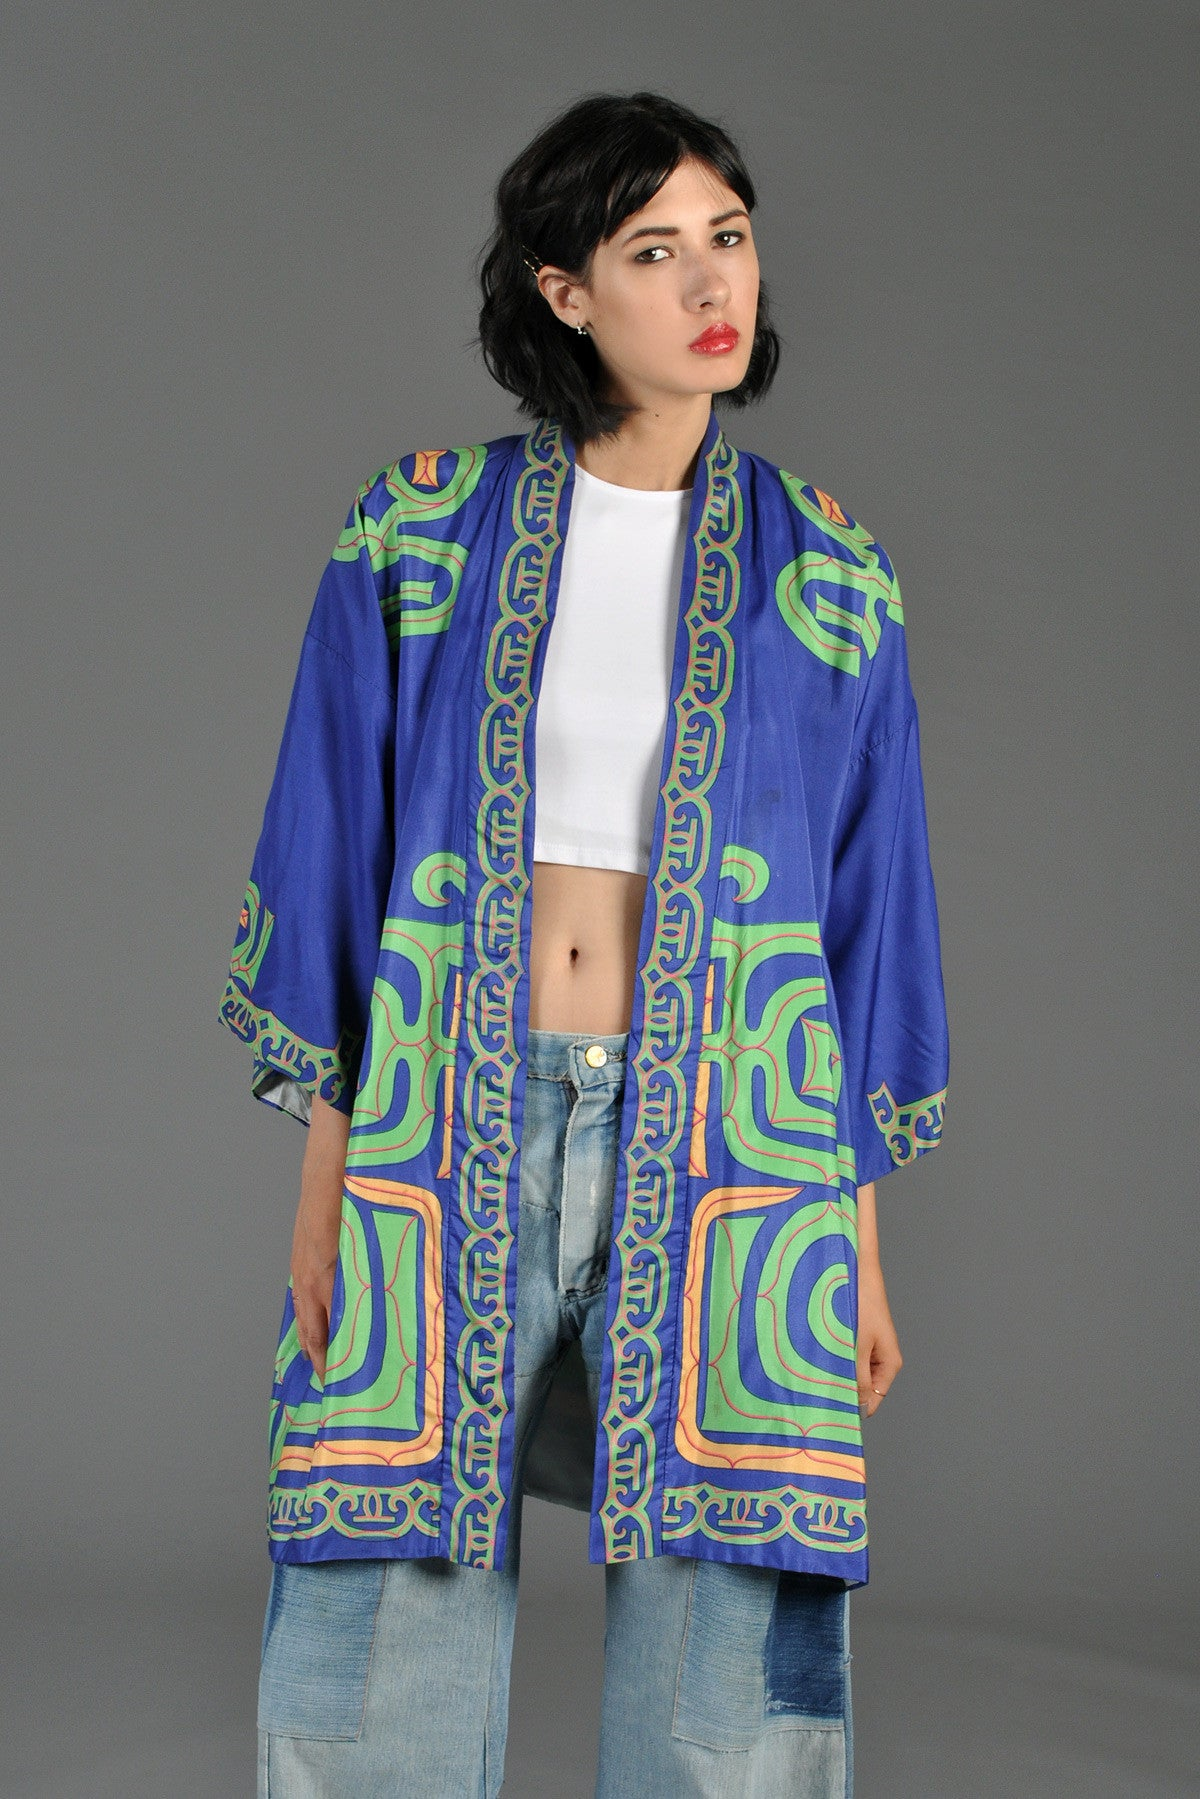 Shop for modern kimono online at Target.5% Off W/ REDcard· Same Day Store Pick-Up· Free Shipping $35+· Free ReturnsStyles: Jackets, Active wear, Maternity, Dresses, Jeans, Pants, Shirts, Shorts, Skirts.